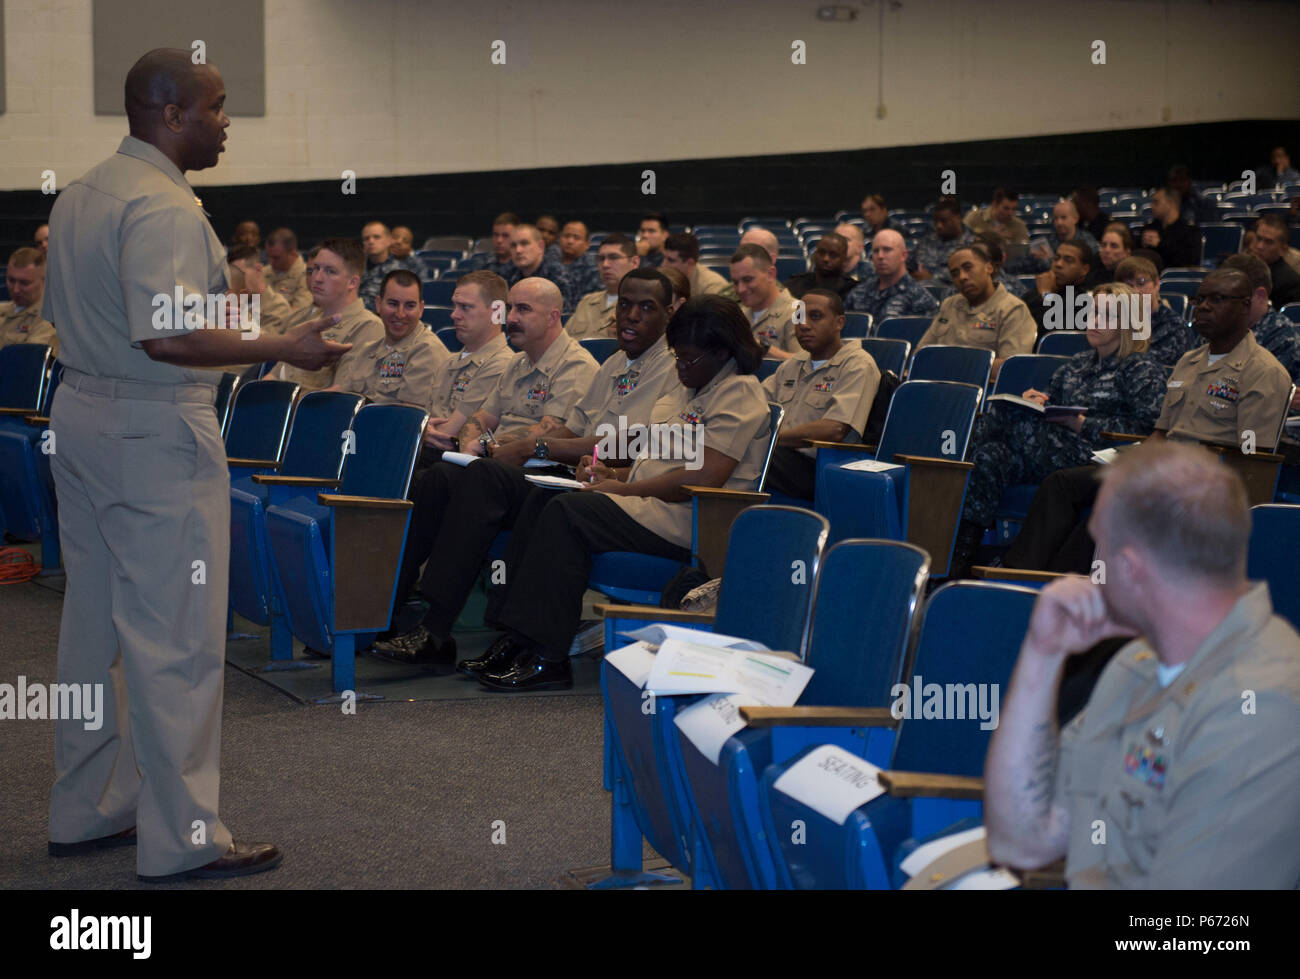 160511-N-TA425- 267 NORFOLK (May 11, 2016) Command Master Chief Steven Allen speaks to Sailors at the ninth annual First Class Petty Officer Association (FCPOA) Symposium.  The Naval Station Norfolk FCPOA established the event as a way to help Sailors further their careers, network and get leadership guidance. (U.S. Navy photo by Mass Communication Specialist 2nd Class Erica Yelland/Released) - Stock Image